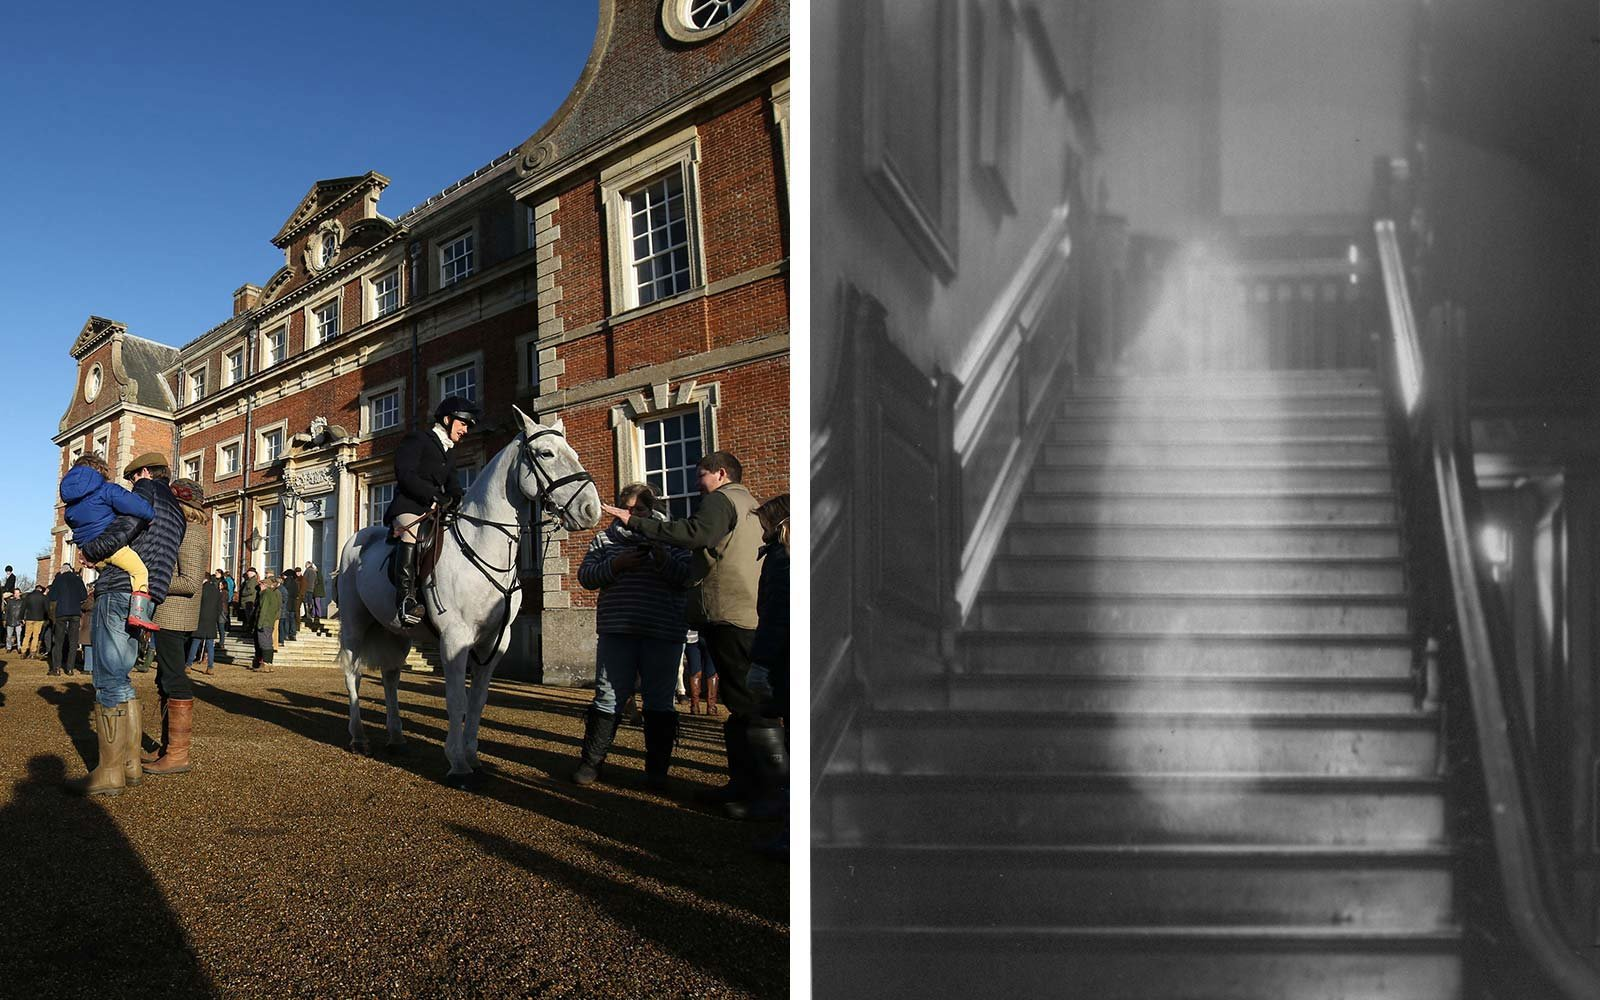 raynham hall norfolk england